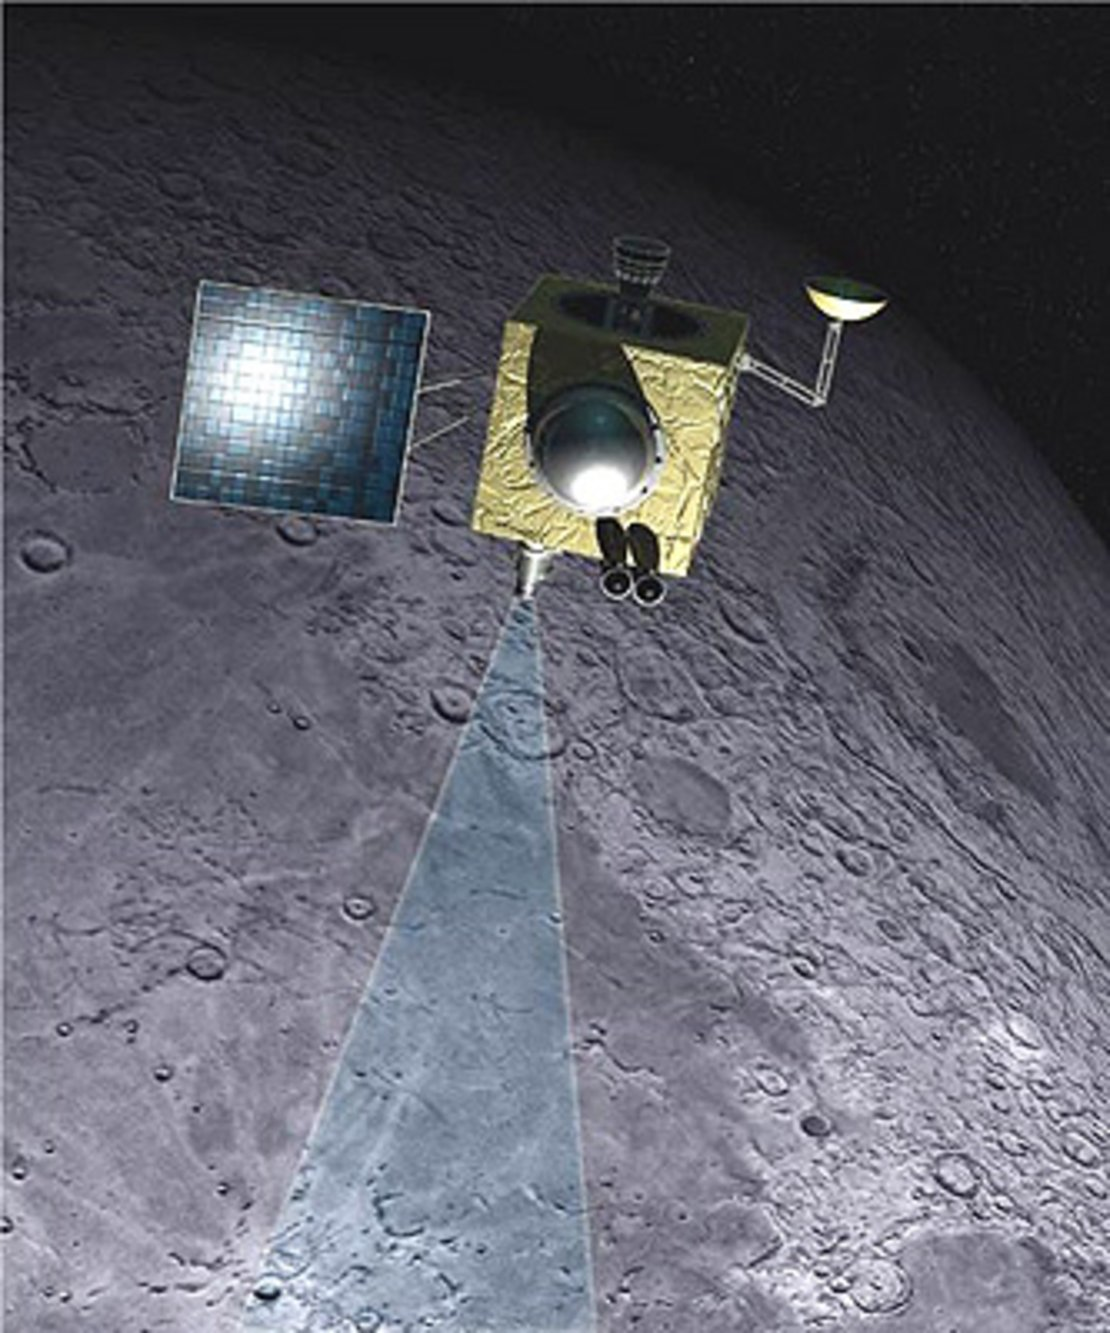 Space in Images - Missions - Chandrayaan-1 - ESA Chandrayaan-1 pictures from moon